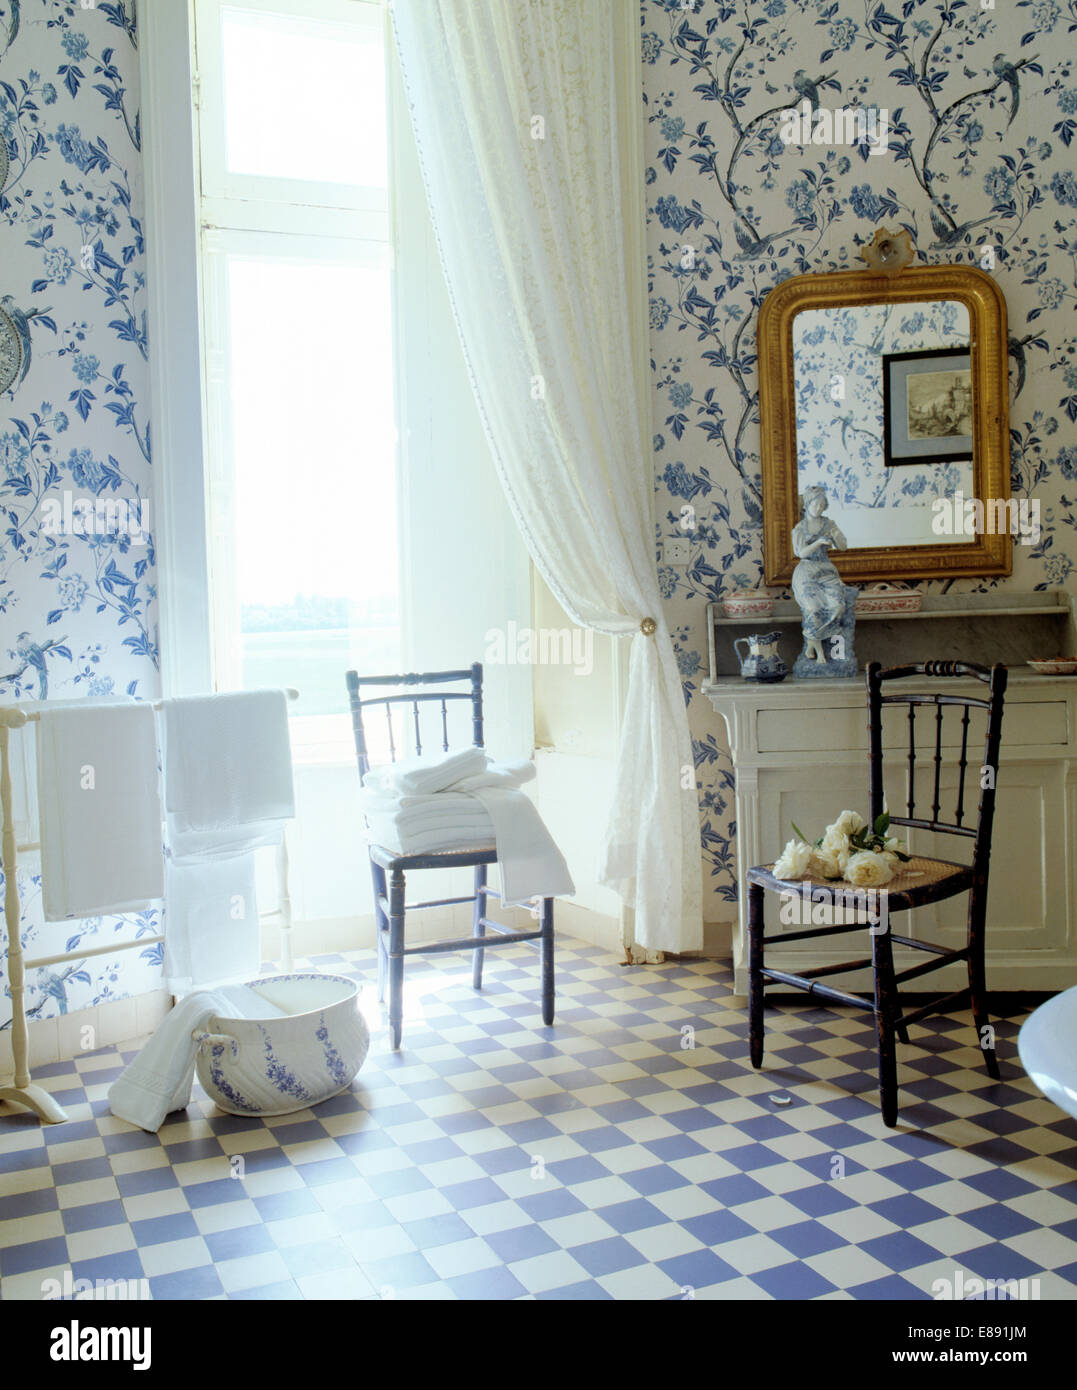 blue white chequer board vinyl floor in country bathroom with stock photo 73957596 alamy. Black Bedroom Furniture Sets. Home Design Ideas